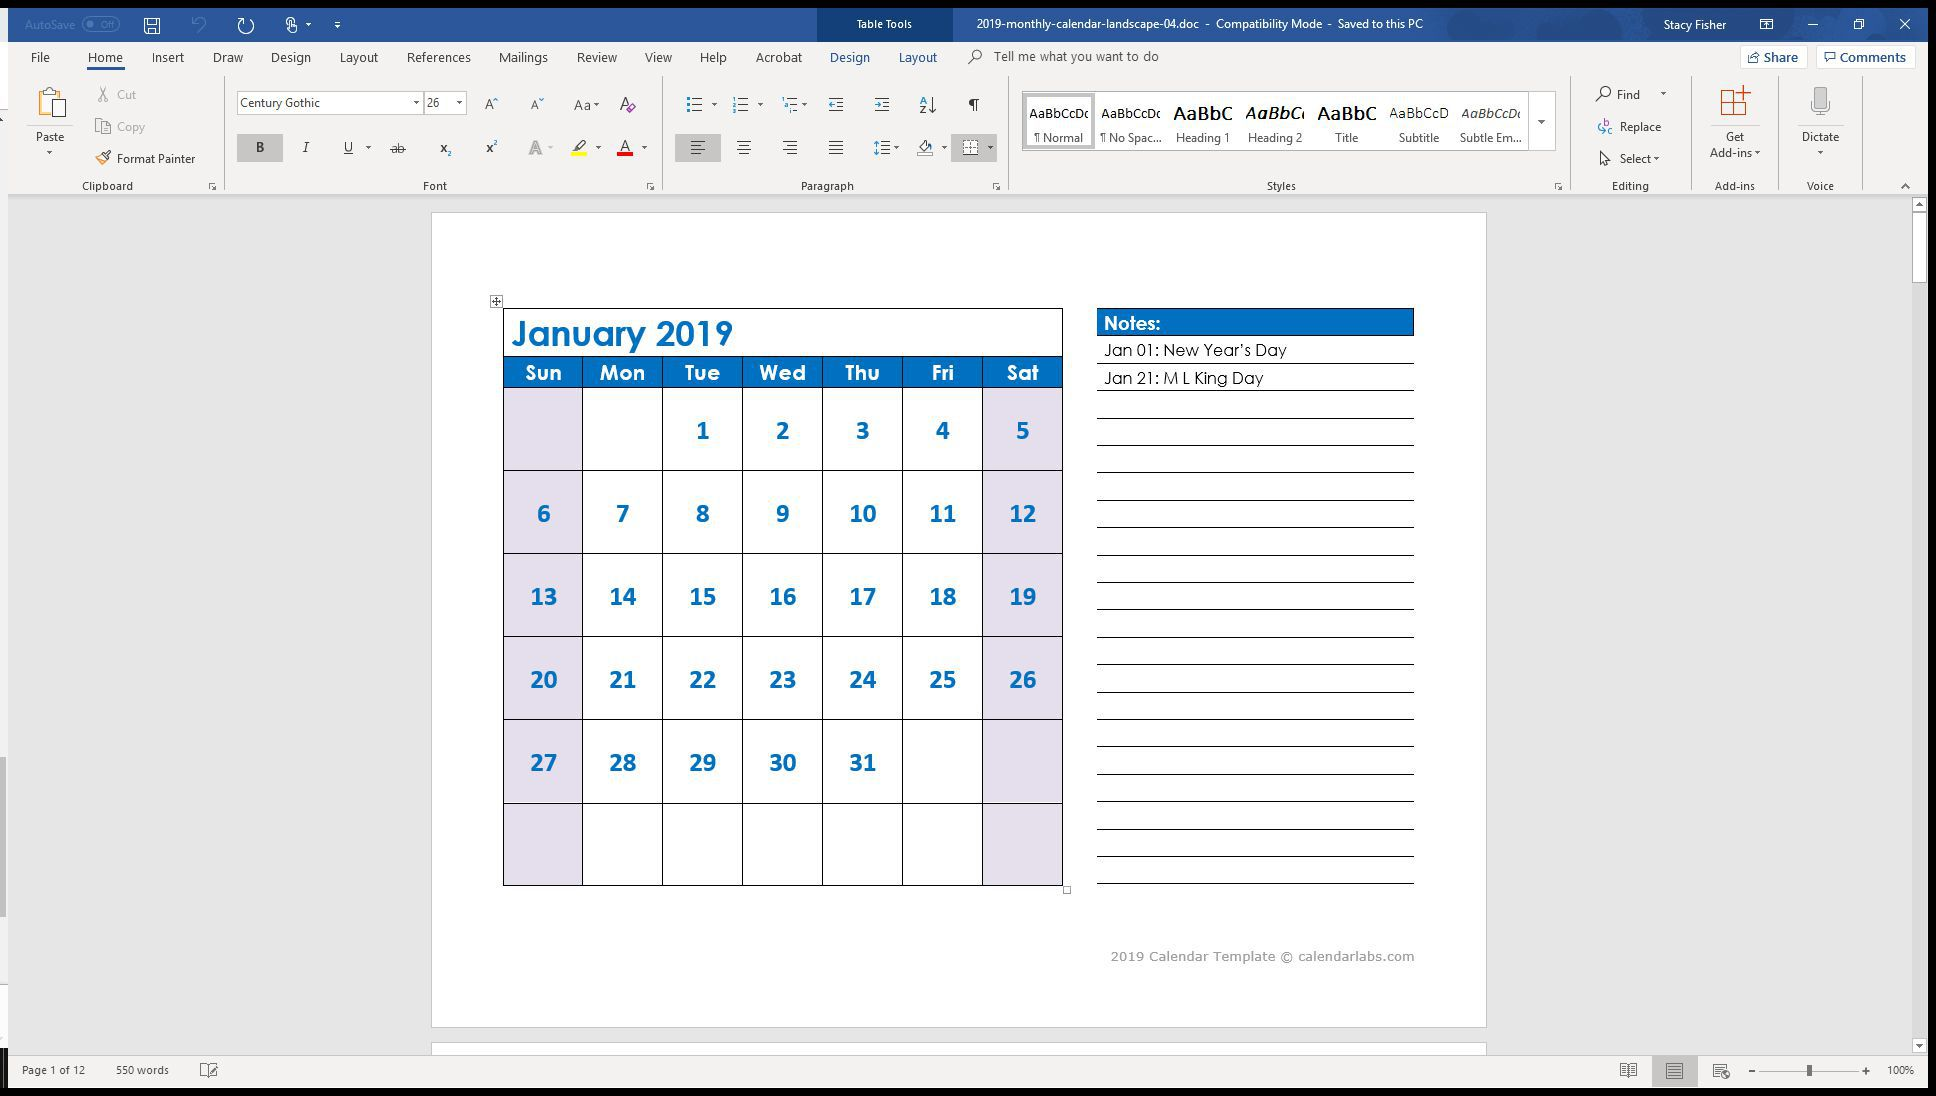 005 Archaicawful Calendar Template For Word 2010 Design  2019 MicrosoftFull